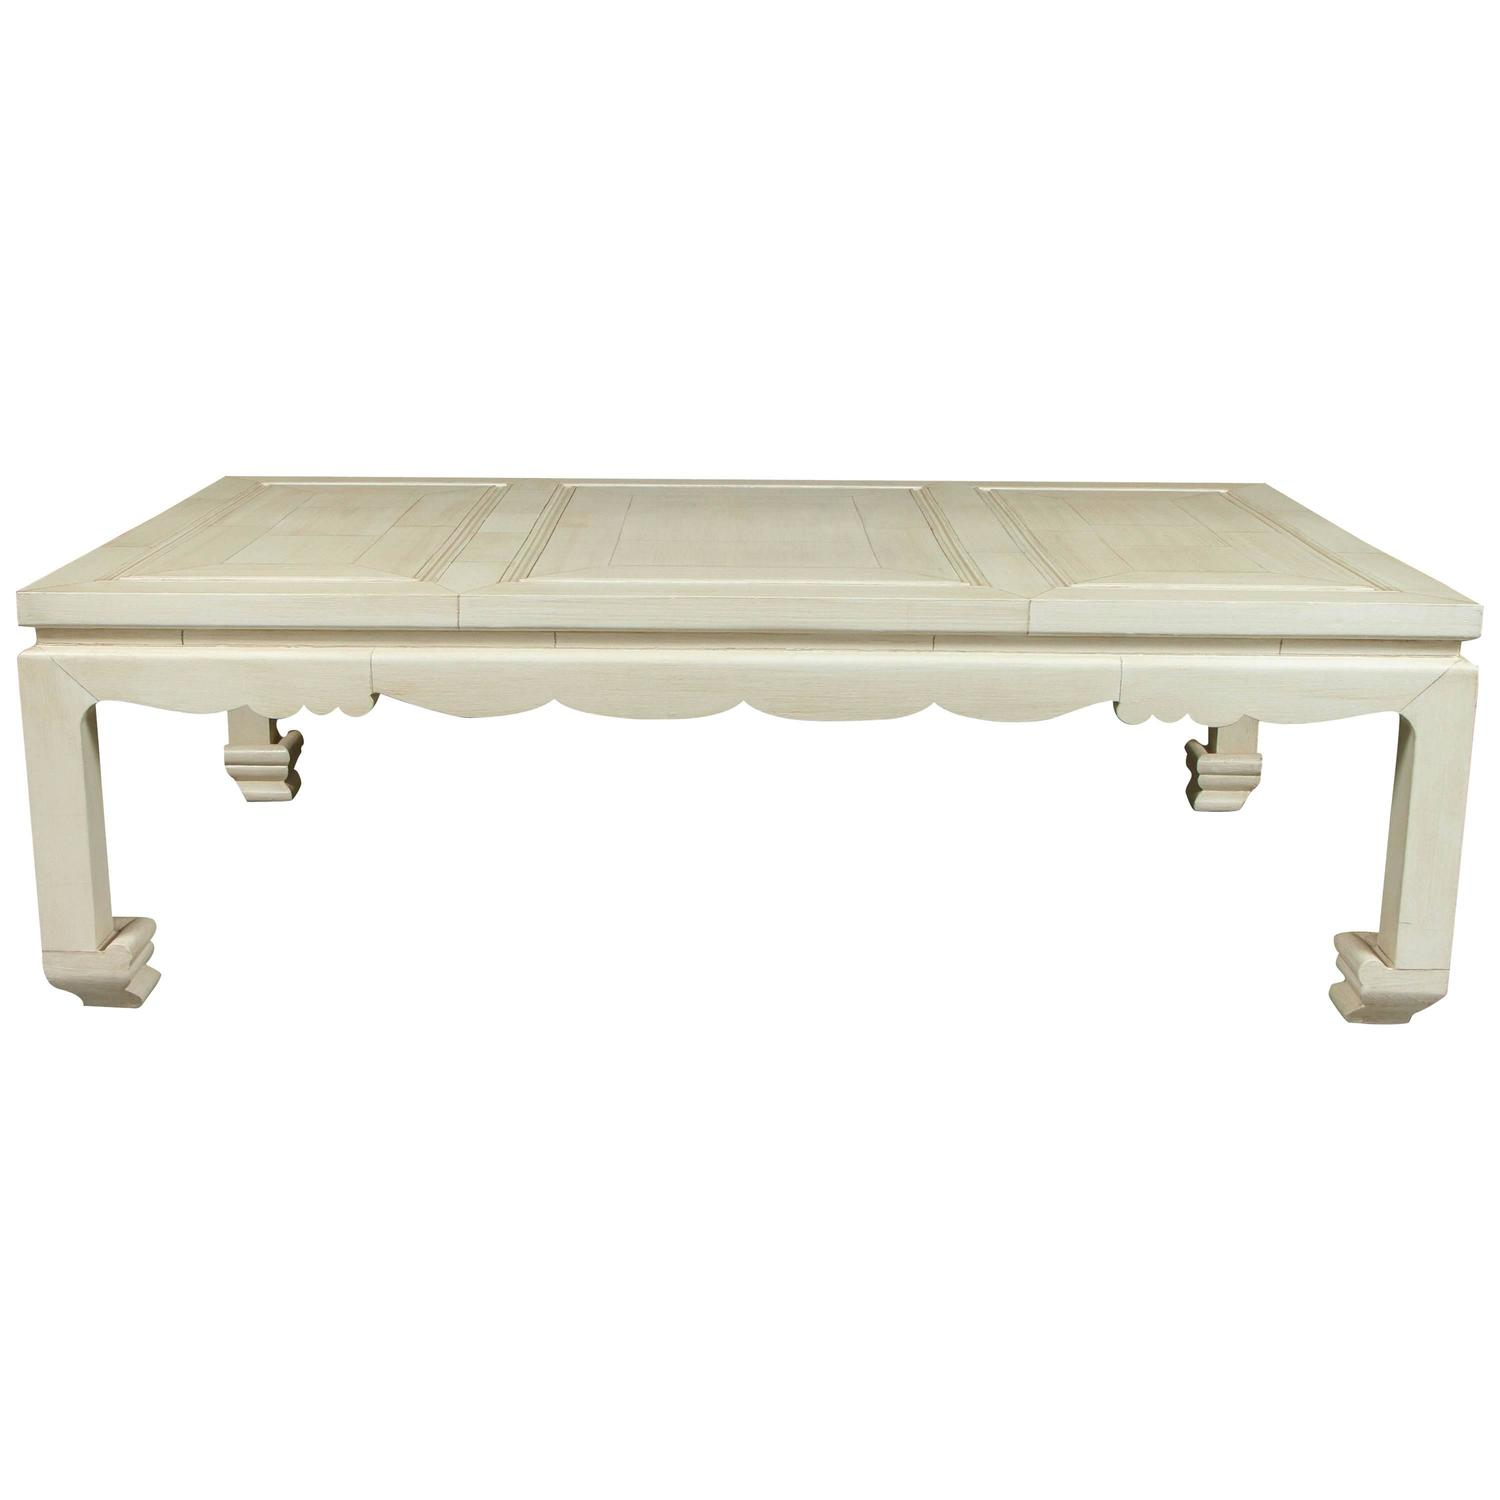 A Vintage Ming Style Coffee Table with a Faux Ivory Inlay Finish